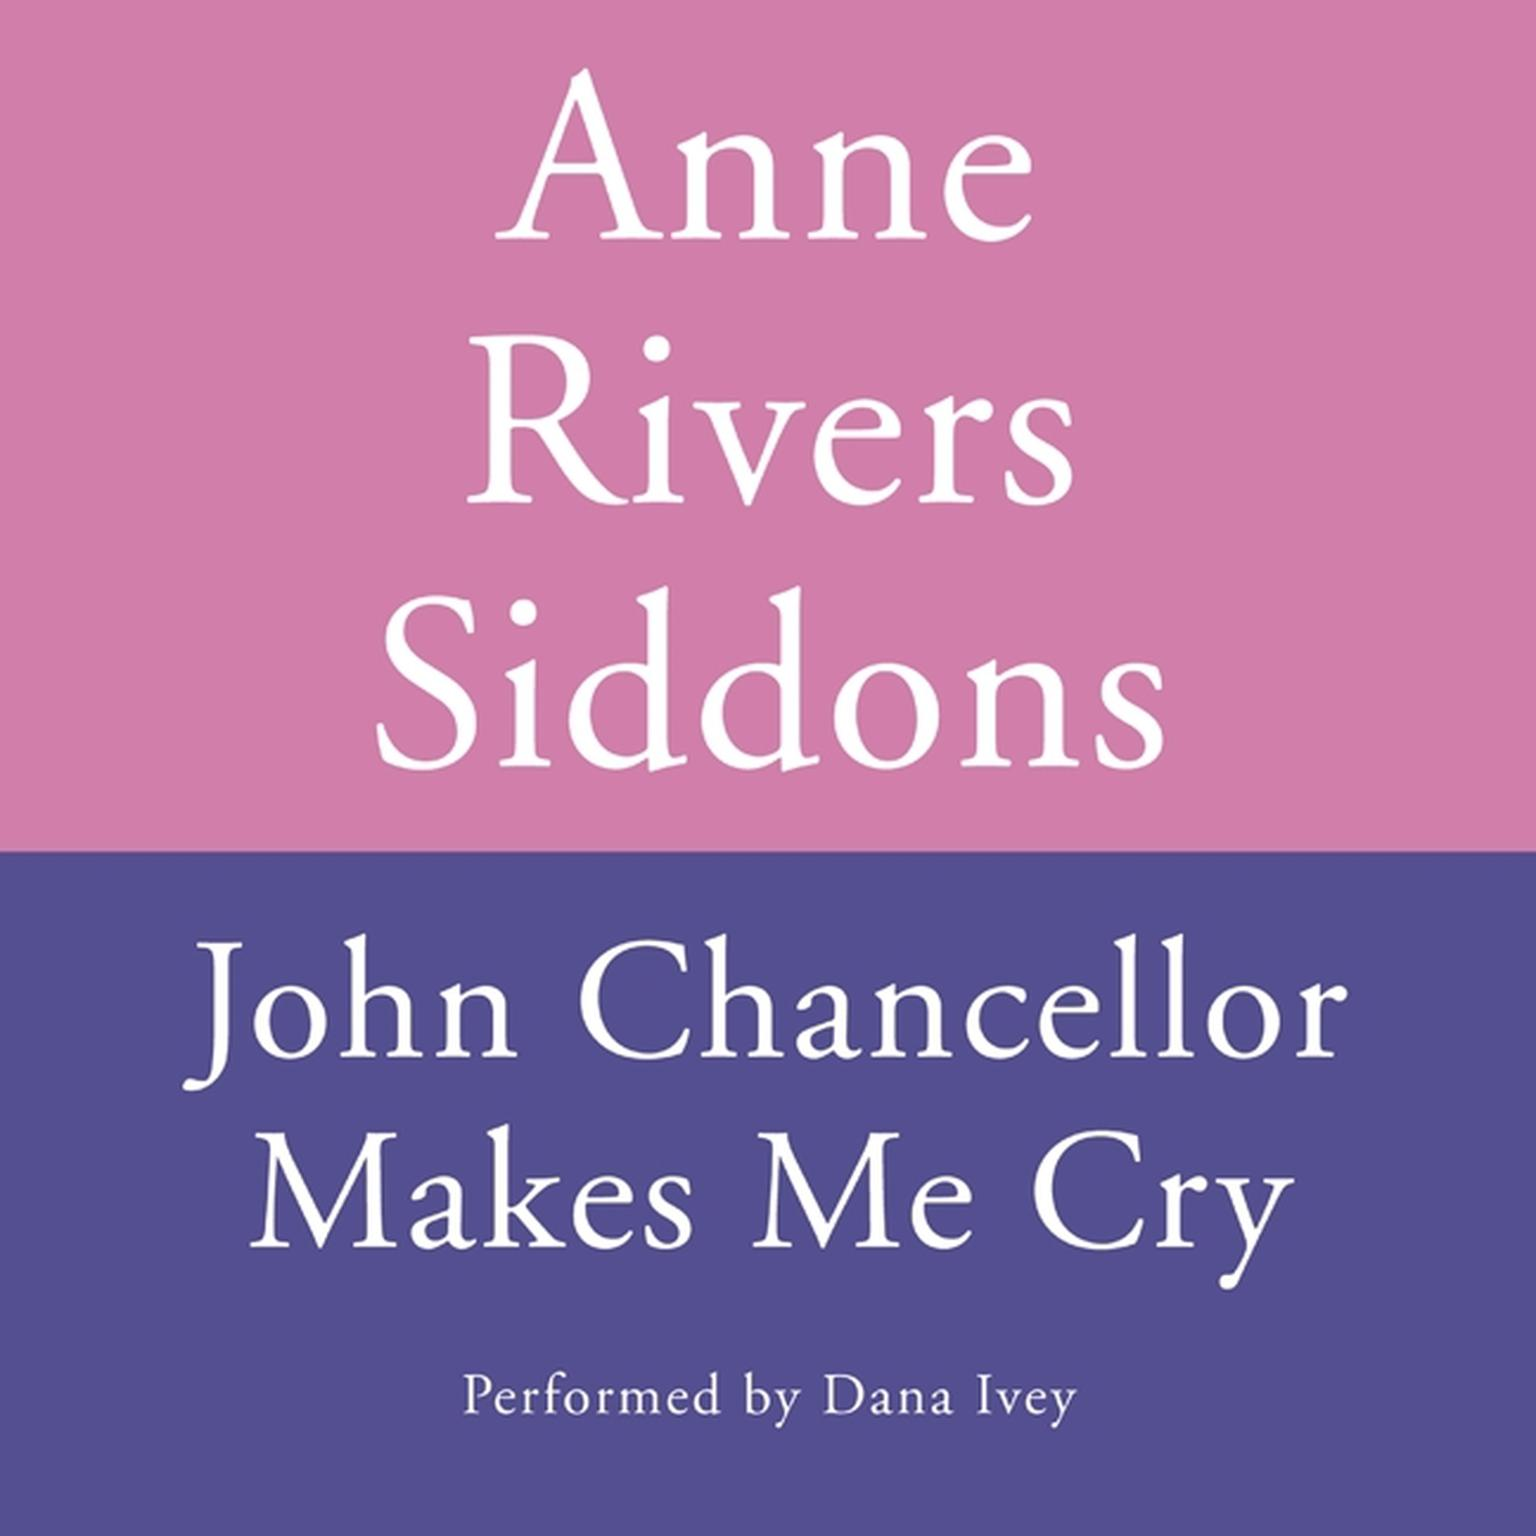 Printable JOHN CHANCELLOR MAKES ME CRY Audiobook Cover Art